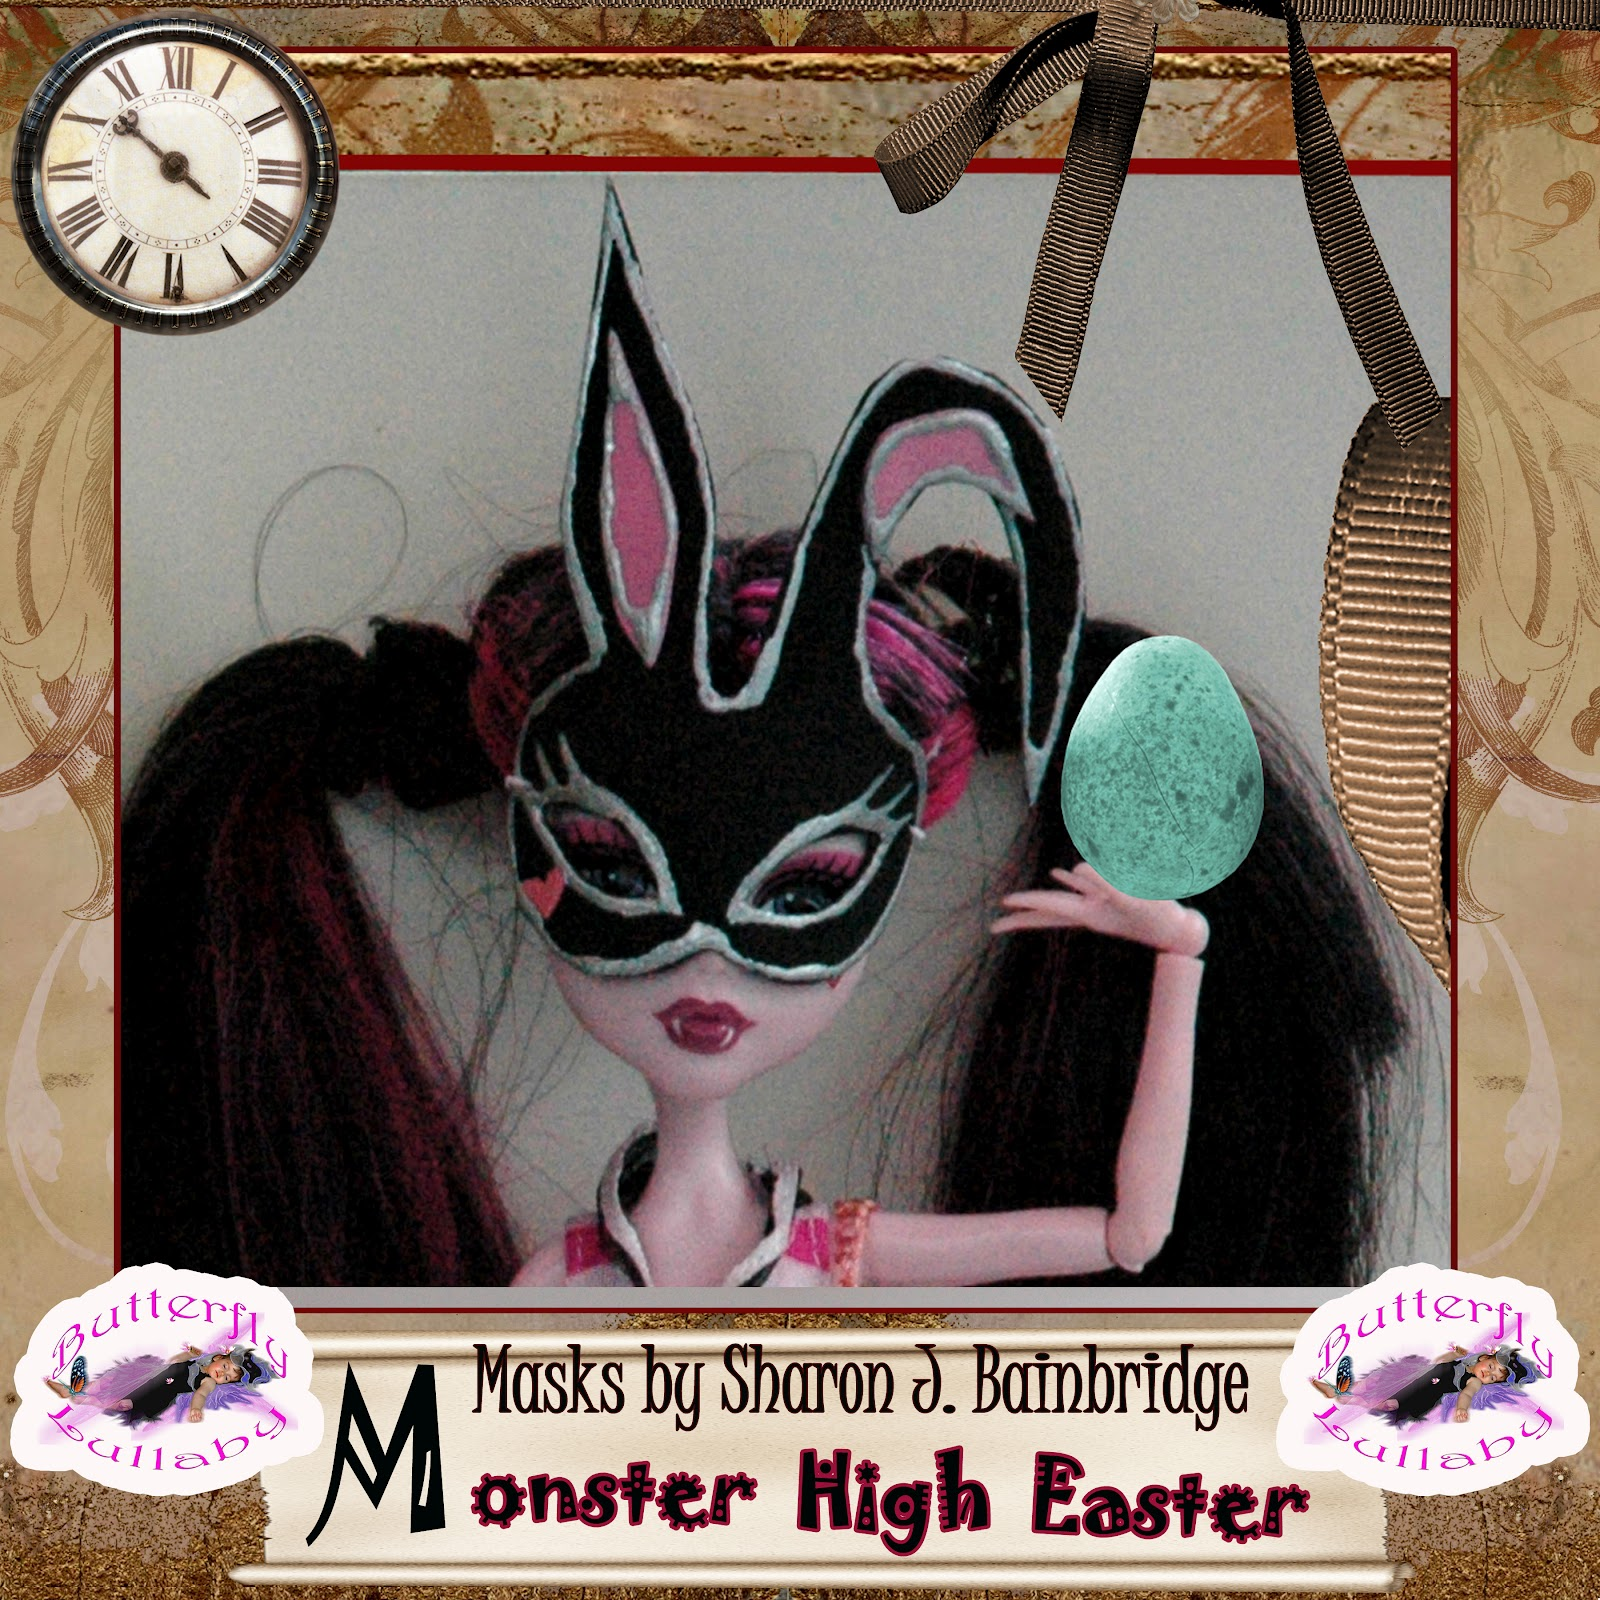 Butterfly lullaby sharon j bainbridge monster high easter egg doll masks by sharon j bainbridge - Masque monster high ...